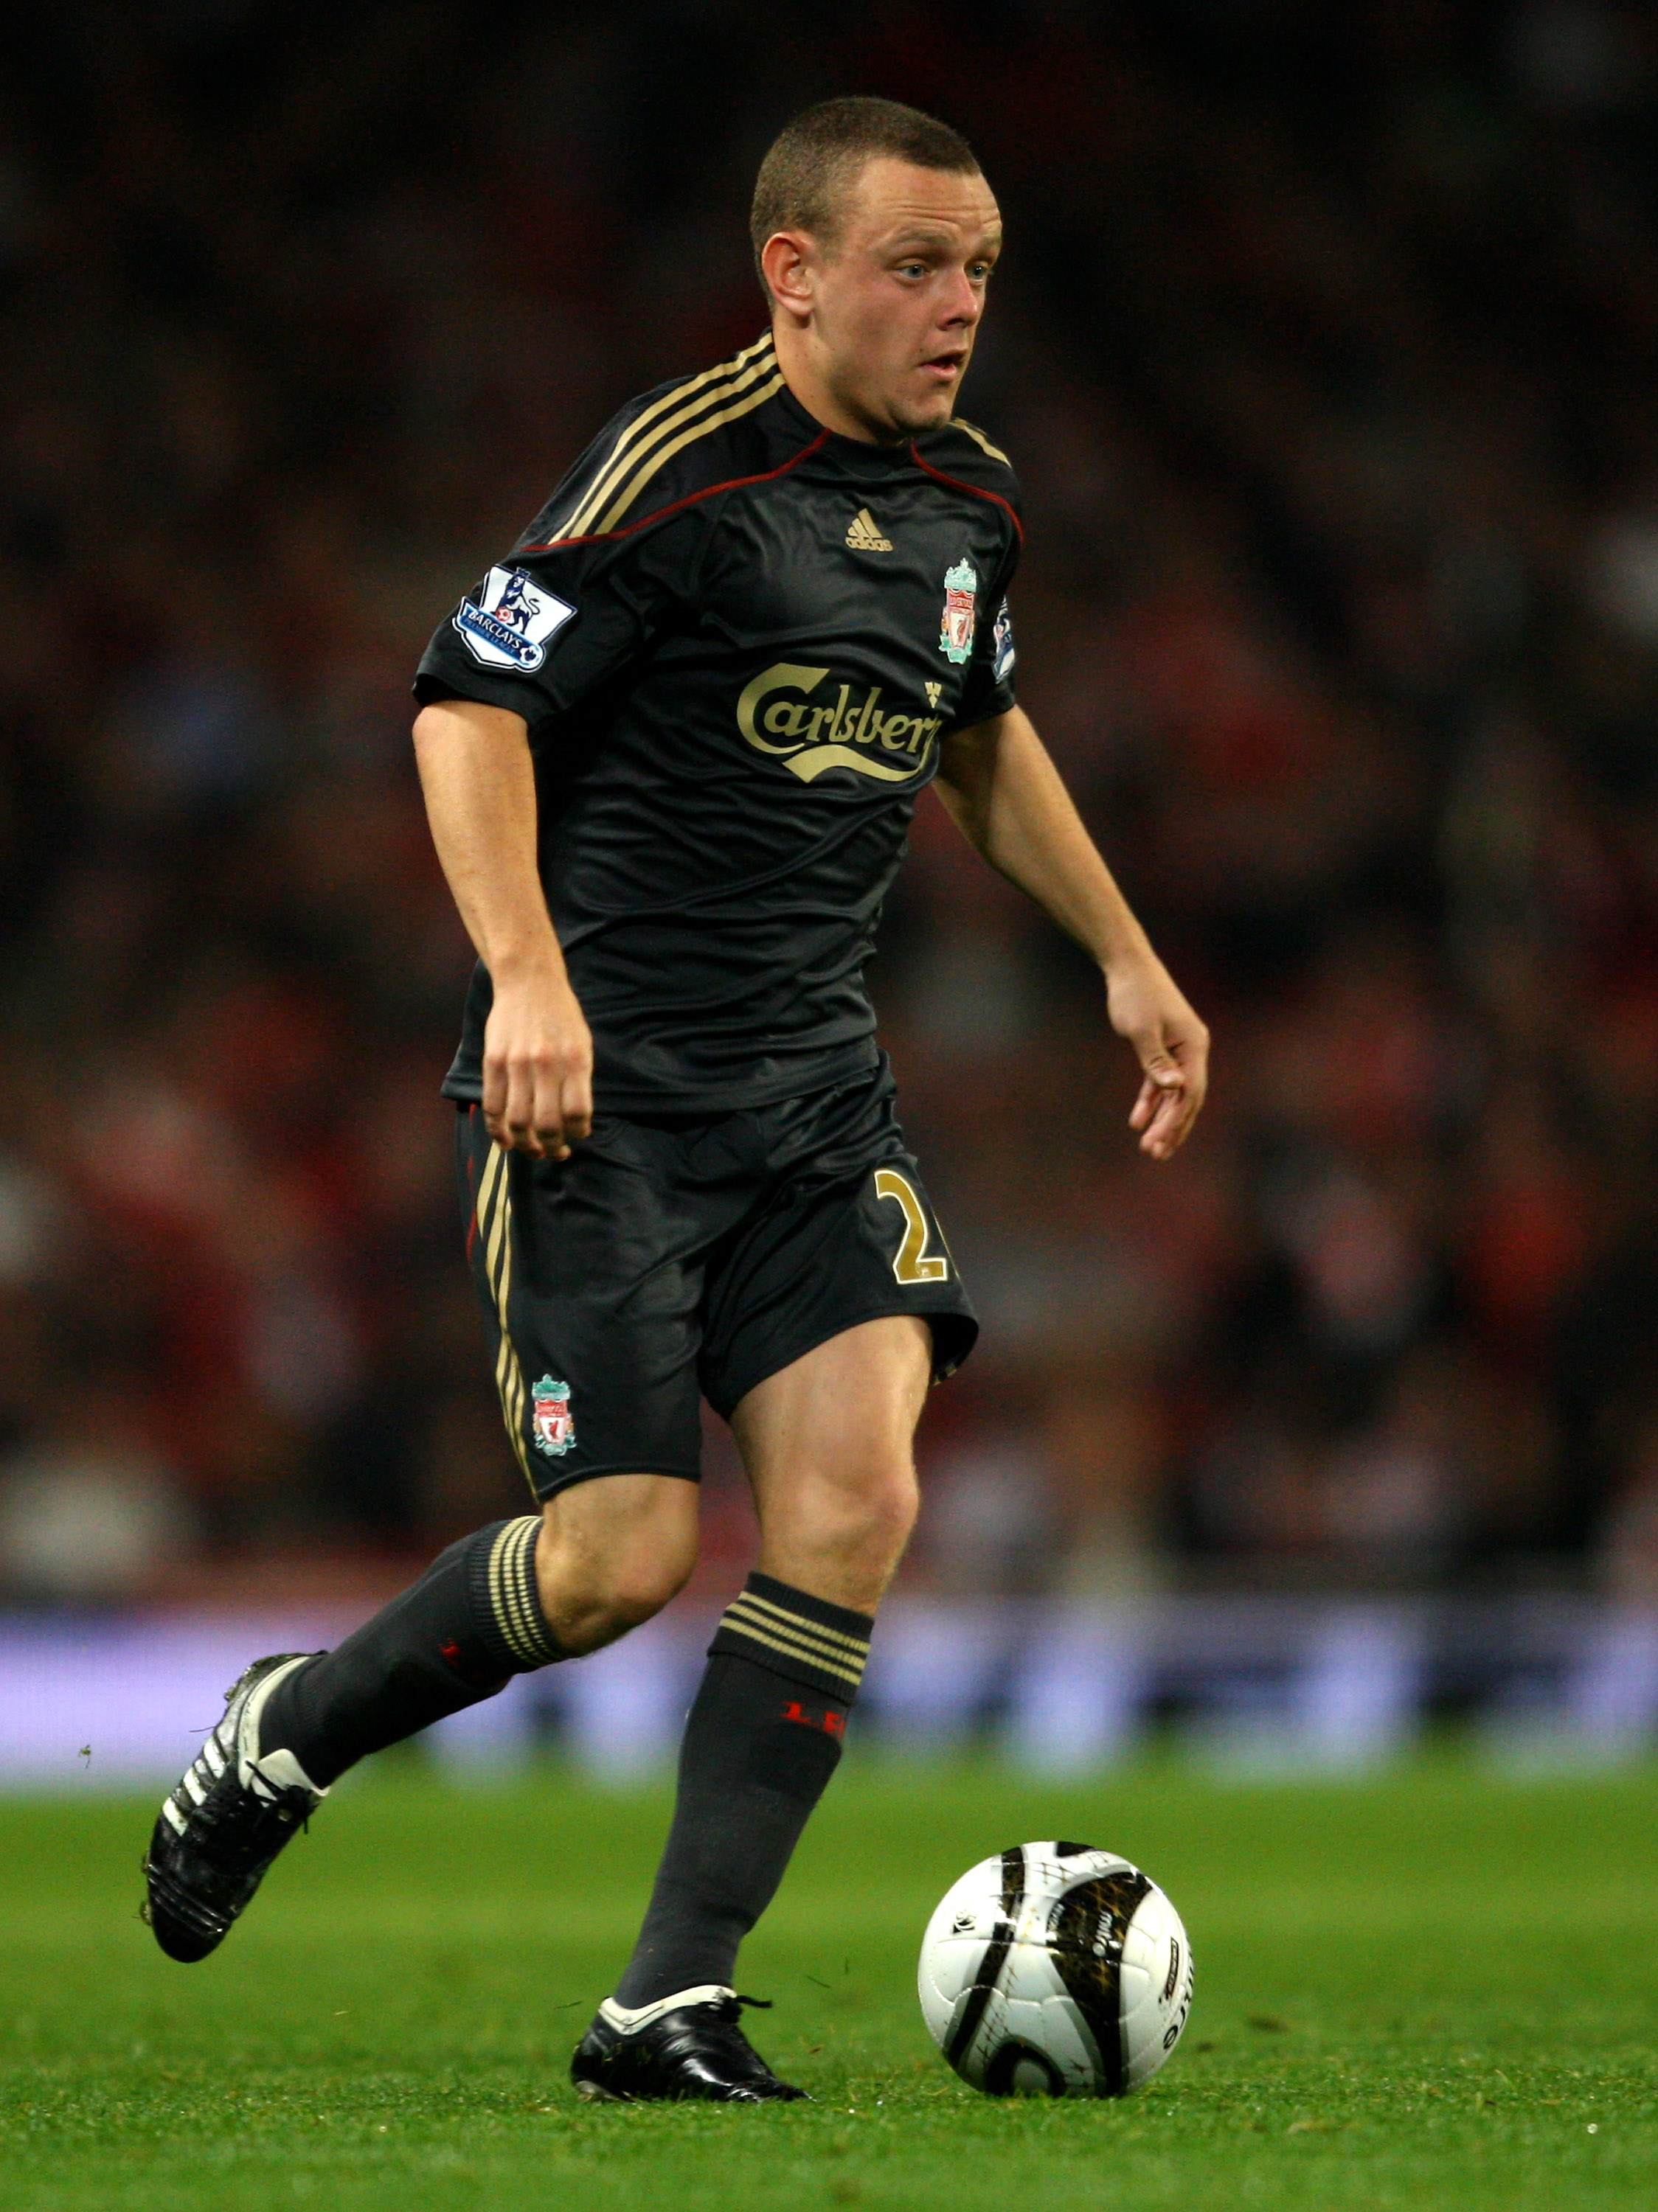 LONDON, ENGLAND - OCTOBER 28:  Jay Spearing of Liverpool during the Carling Cup 4th Round match between Arsenal and Liverpool at the Emirates Stadium on October 28, 2009 in London, England.  (Photo by Shaun Botterill/Getty Images)